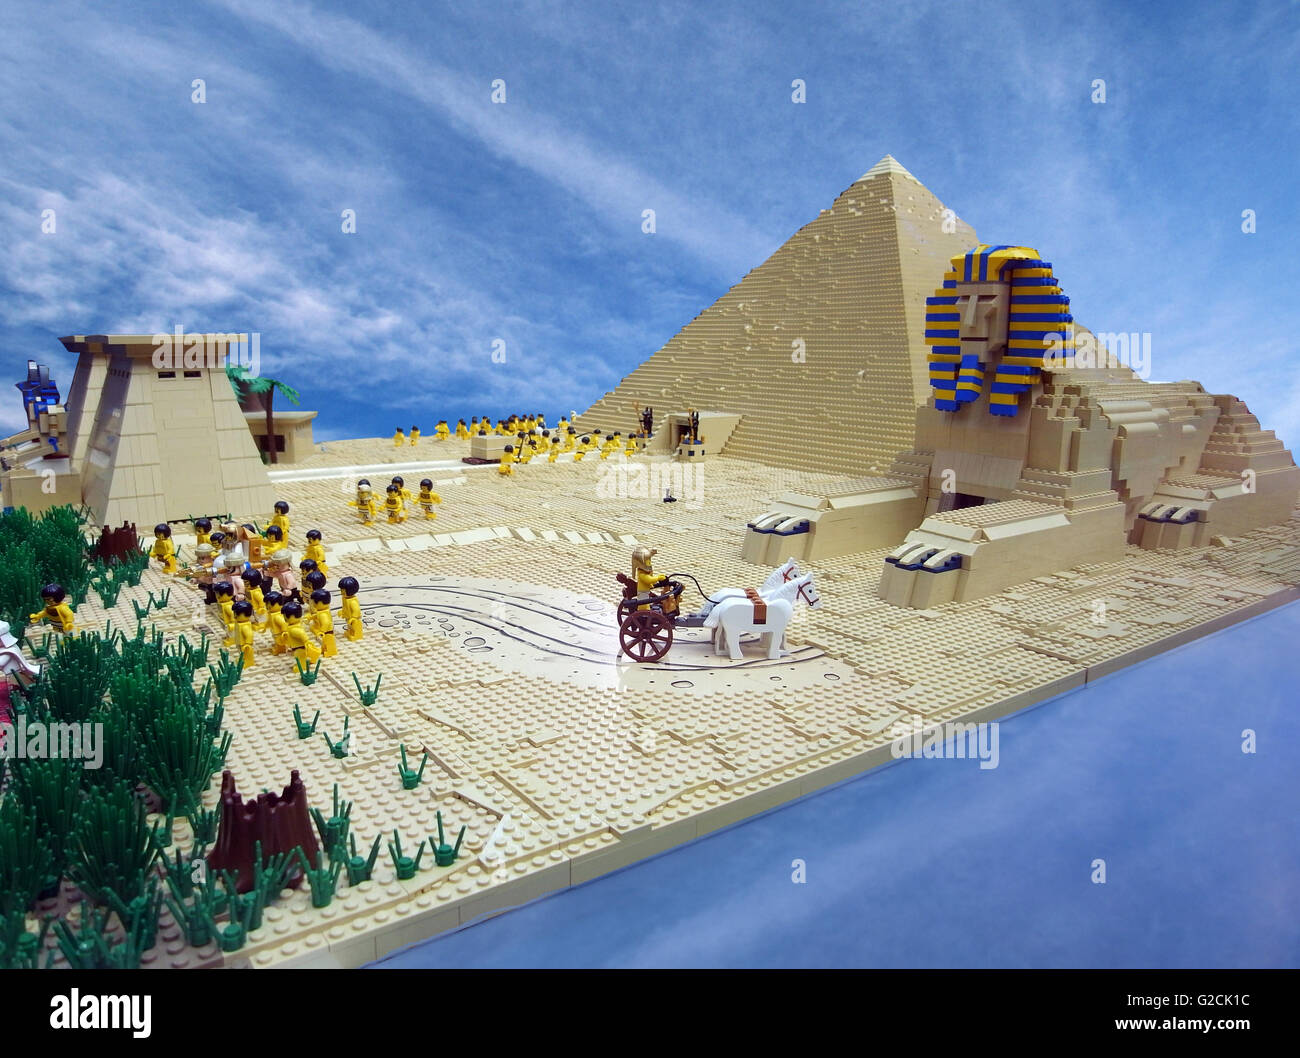 Lego Model Egypt Egyptian build ancient pyramid Sphinx Pharaoh engineering horse slave old time day sky toy fun Stock Photo